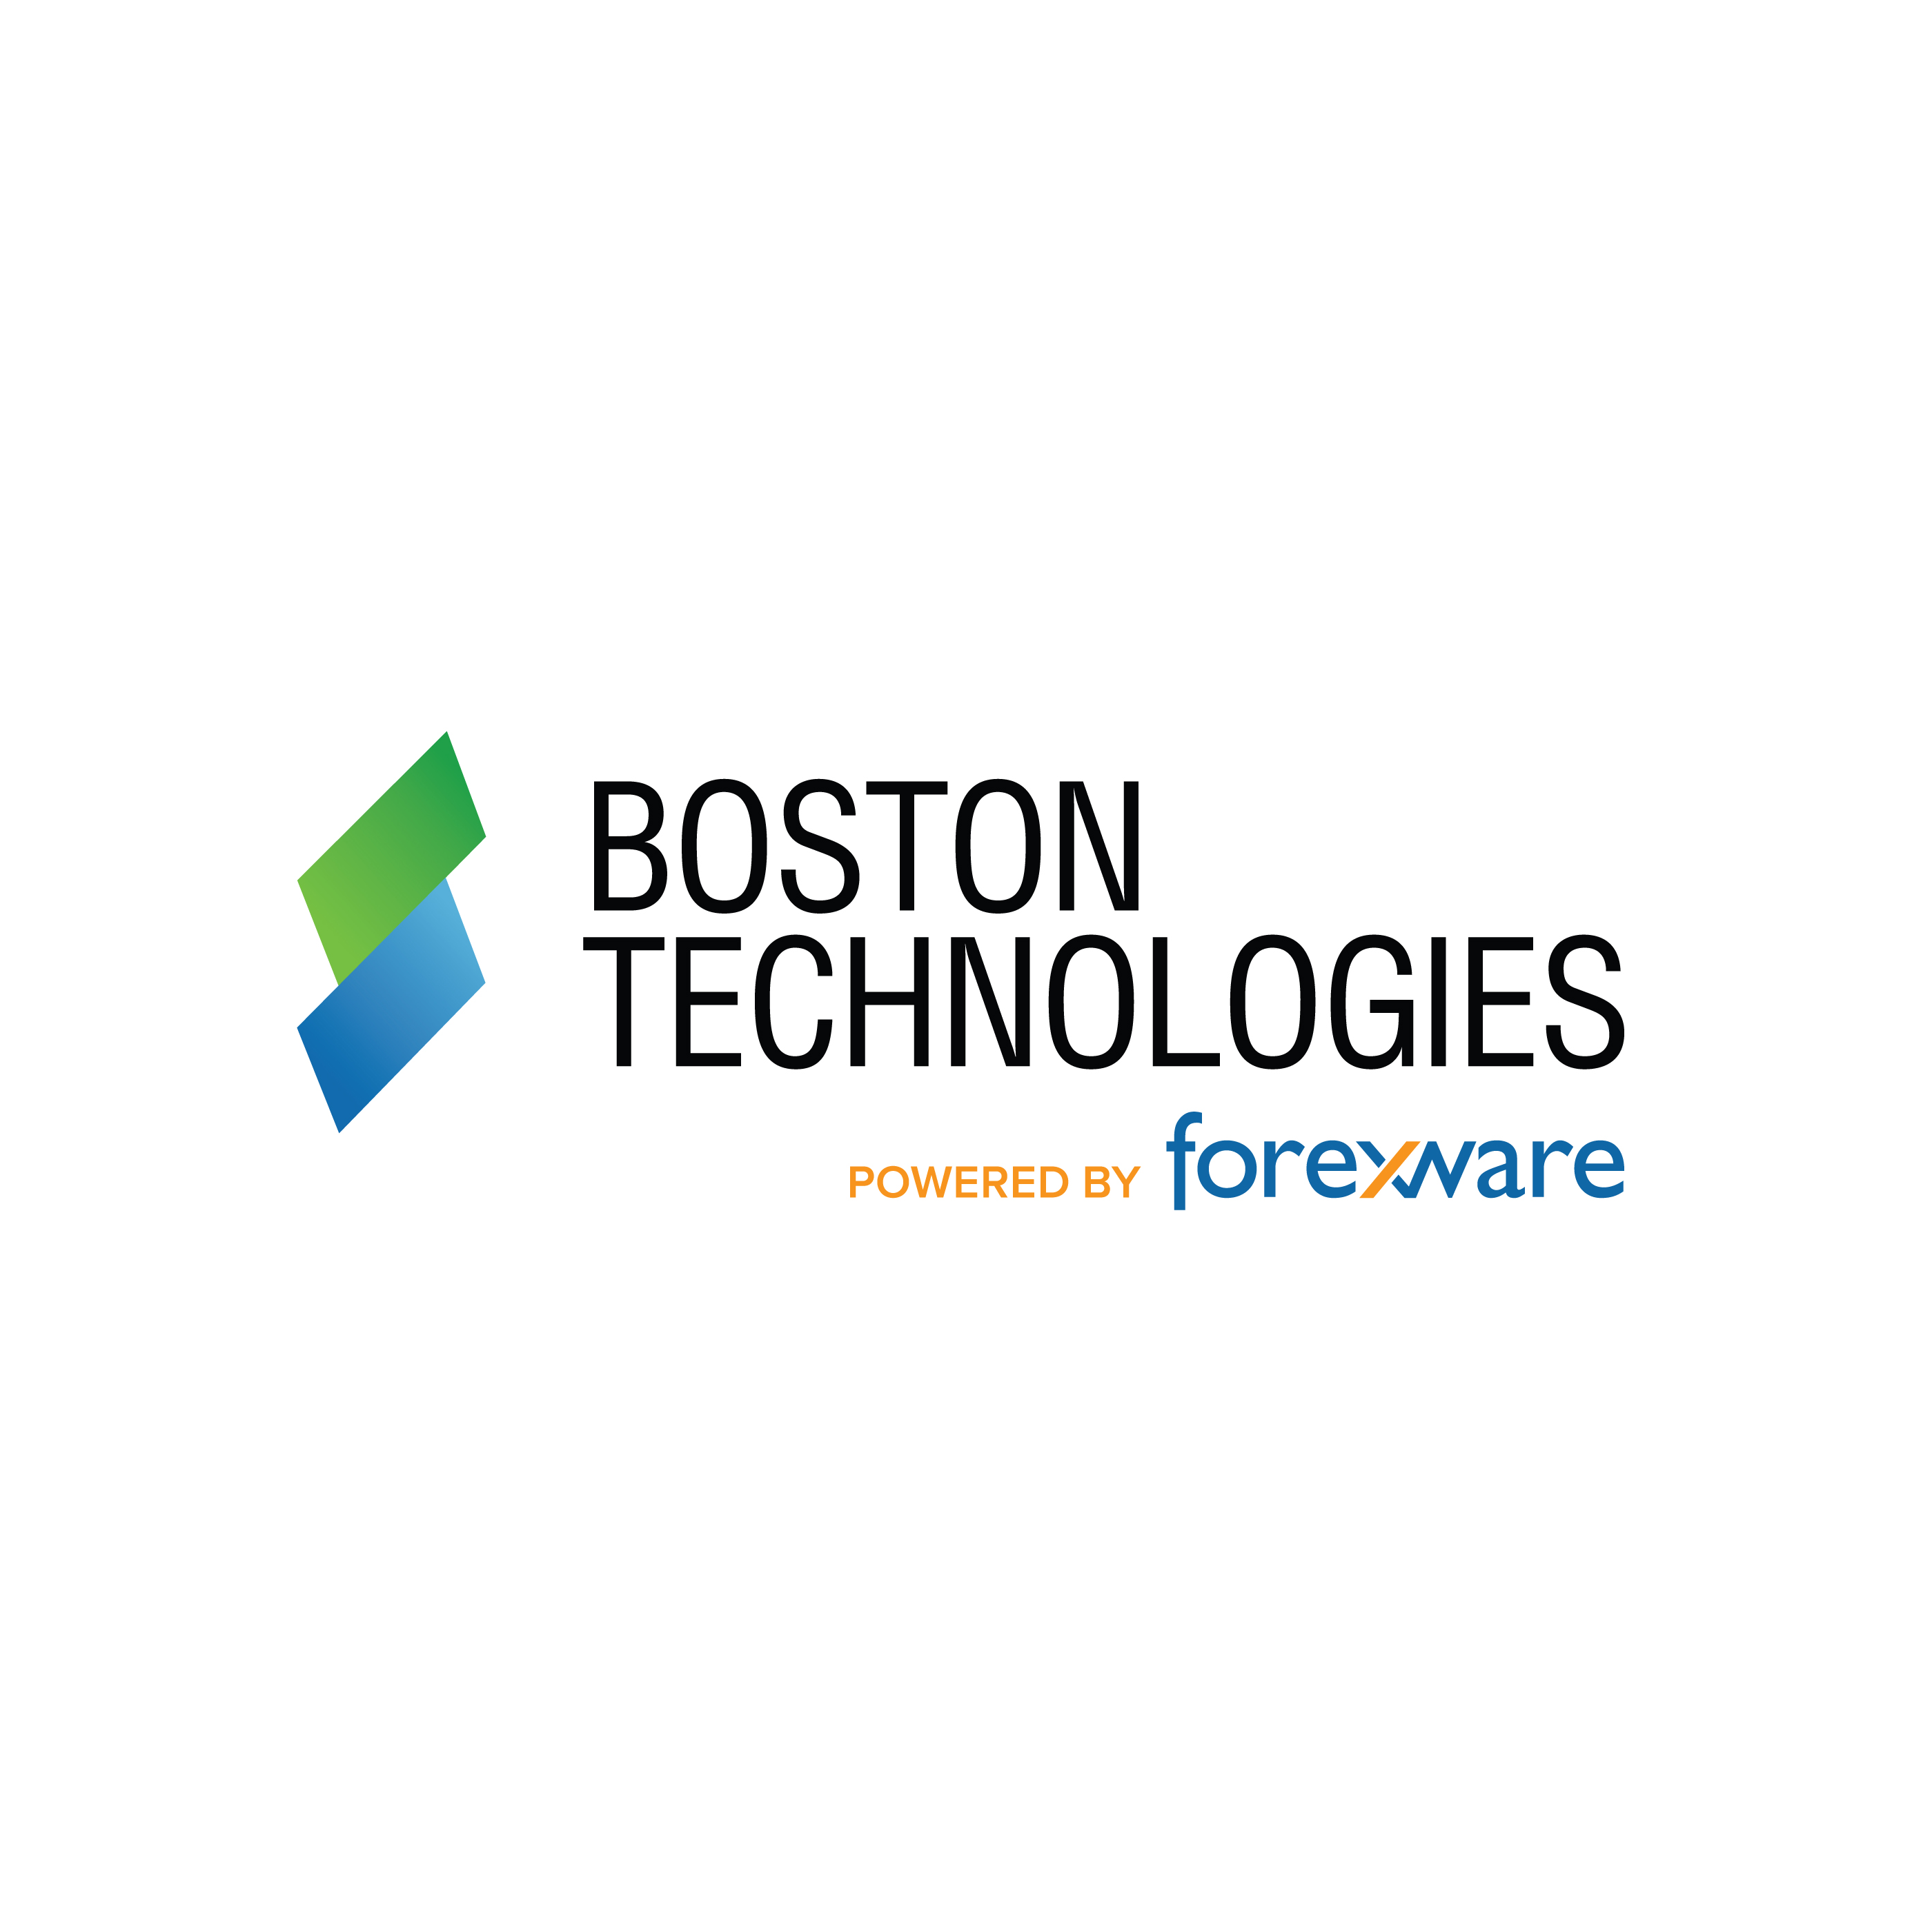 boston_technologies_forexware